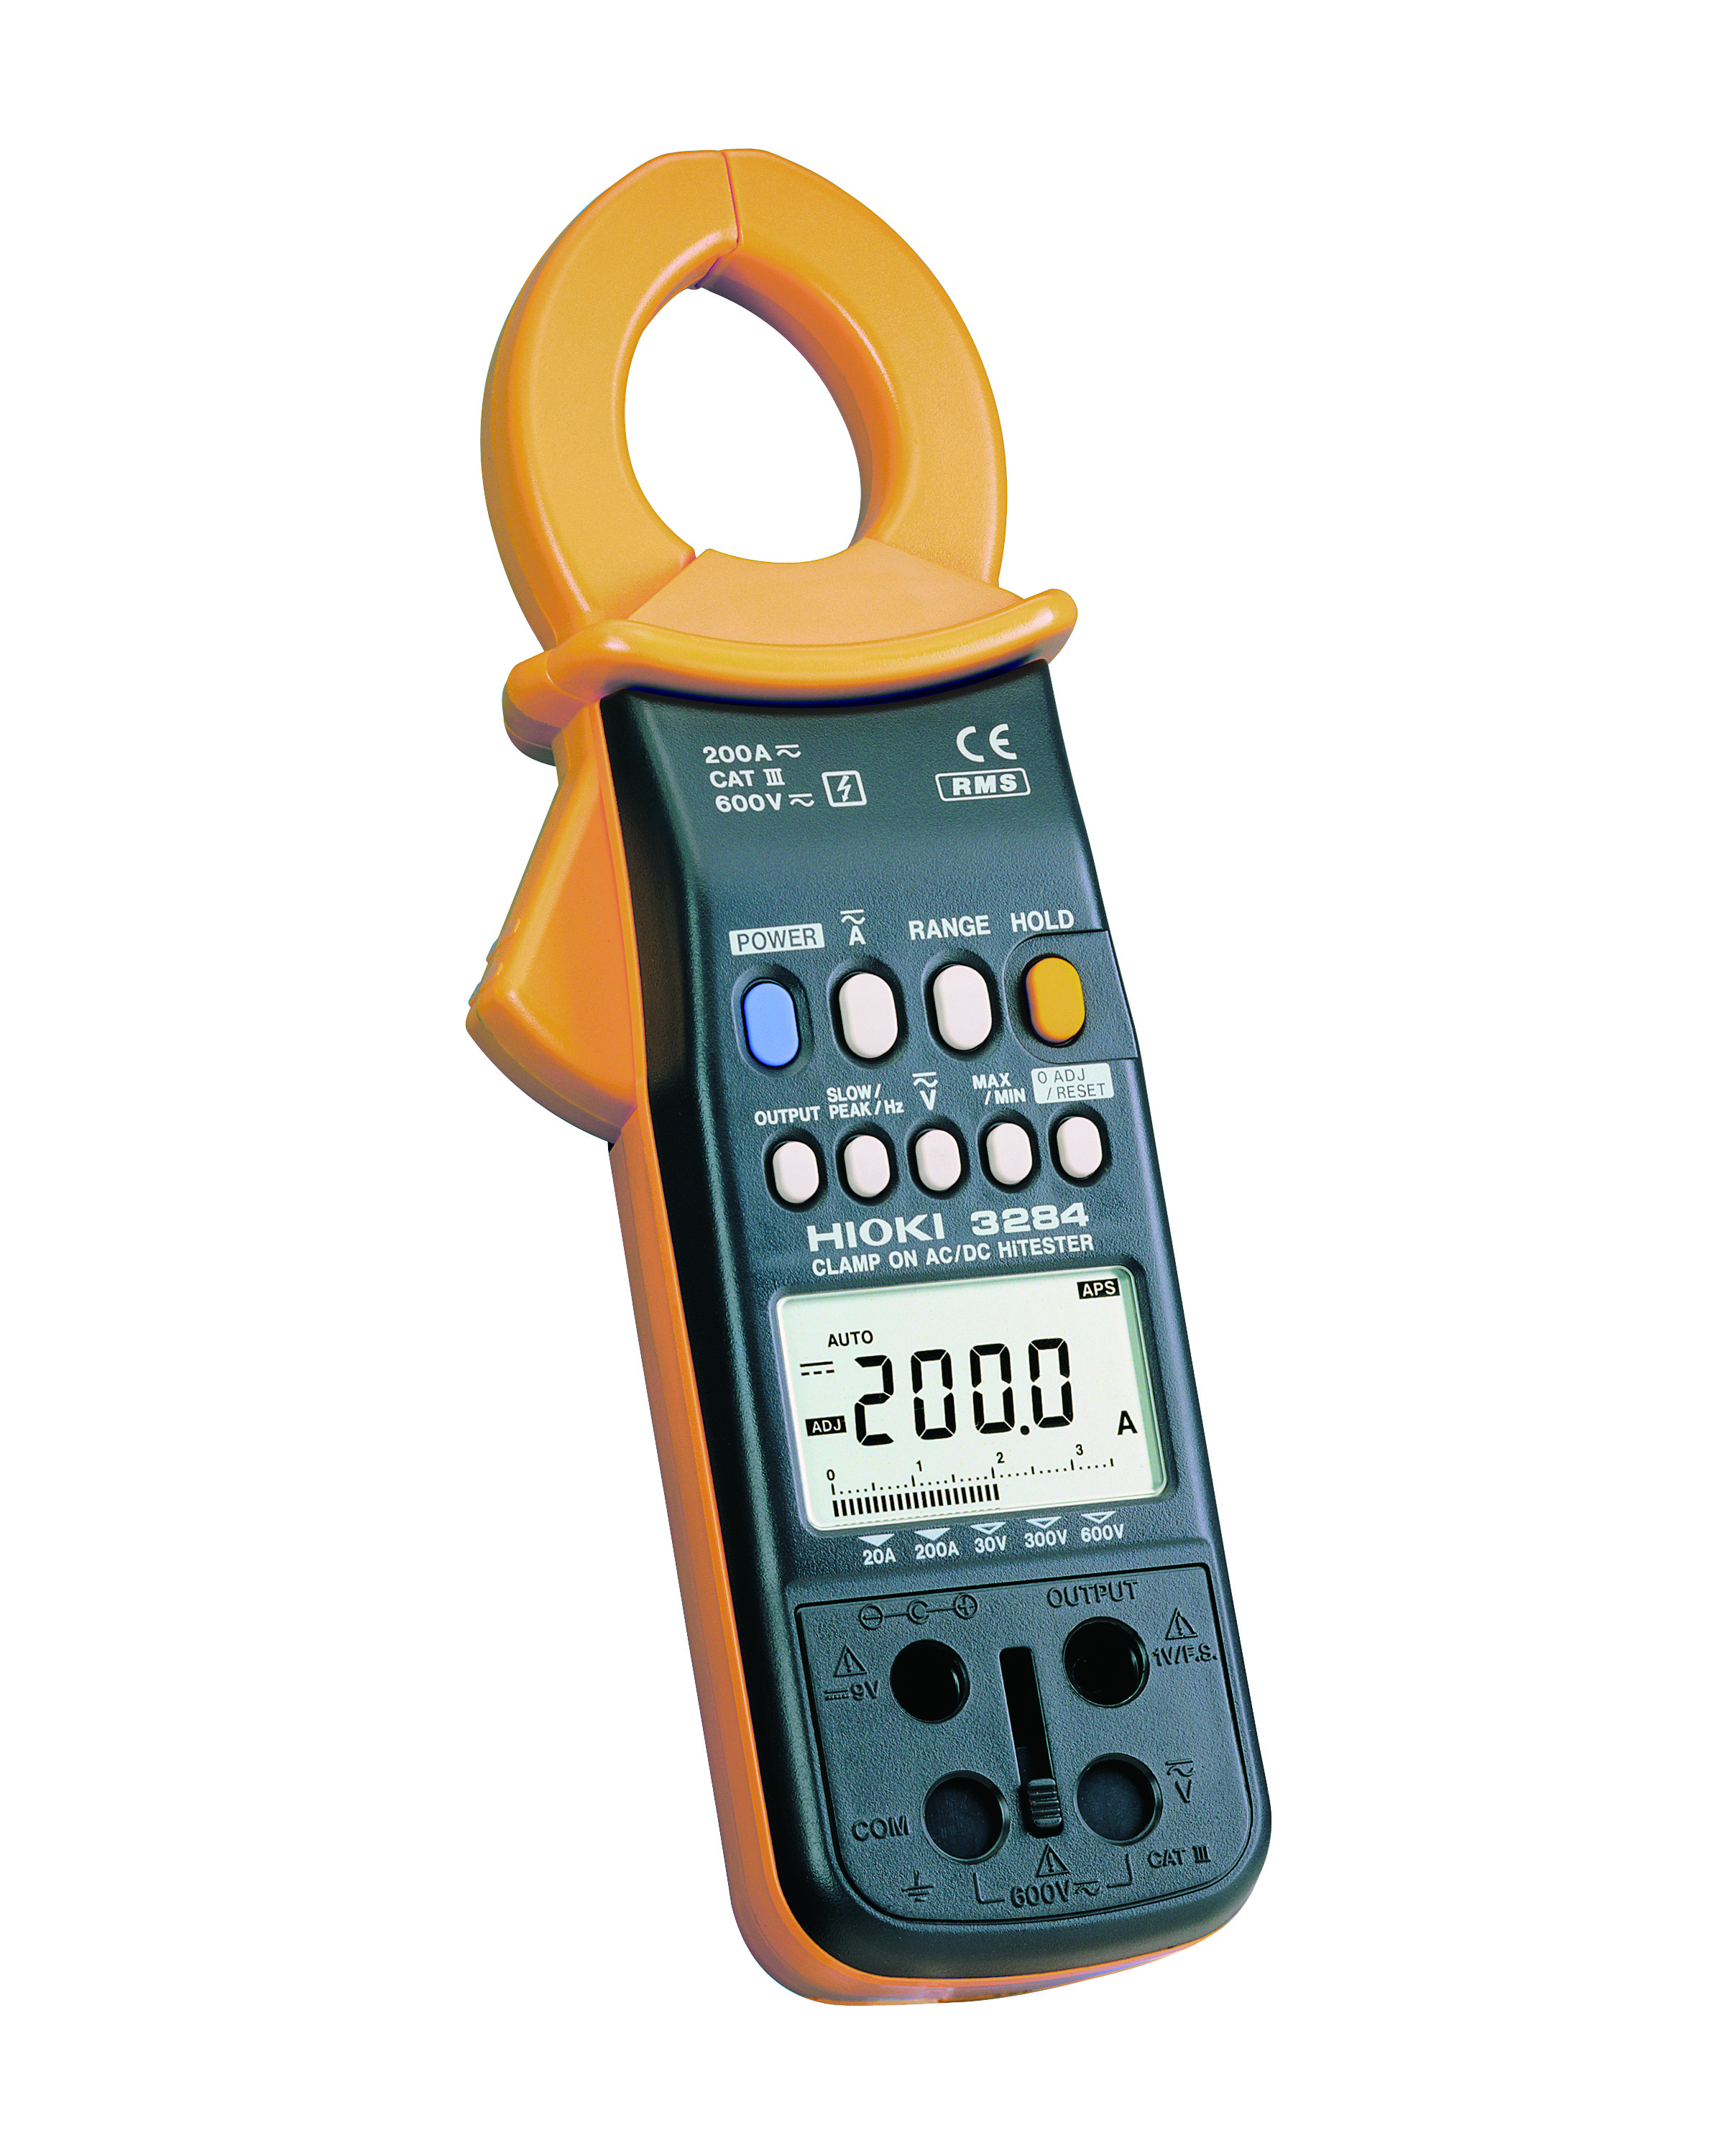 3284 Clamp Tester, 200A AC/DC, TRMS, CAT III 600V